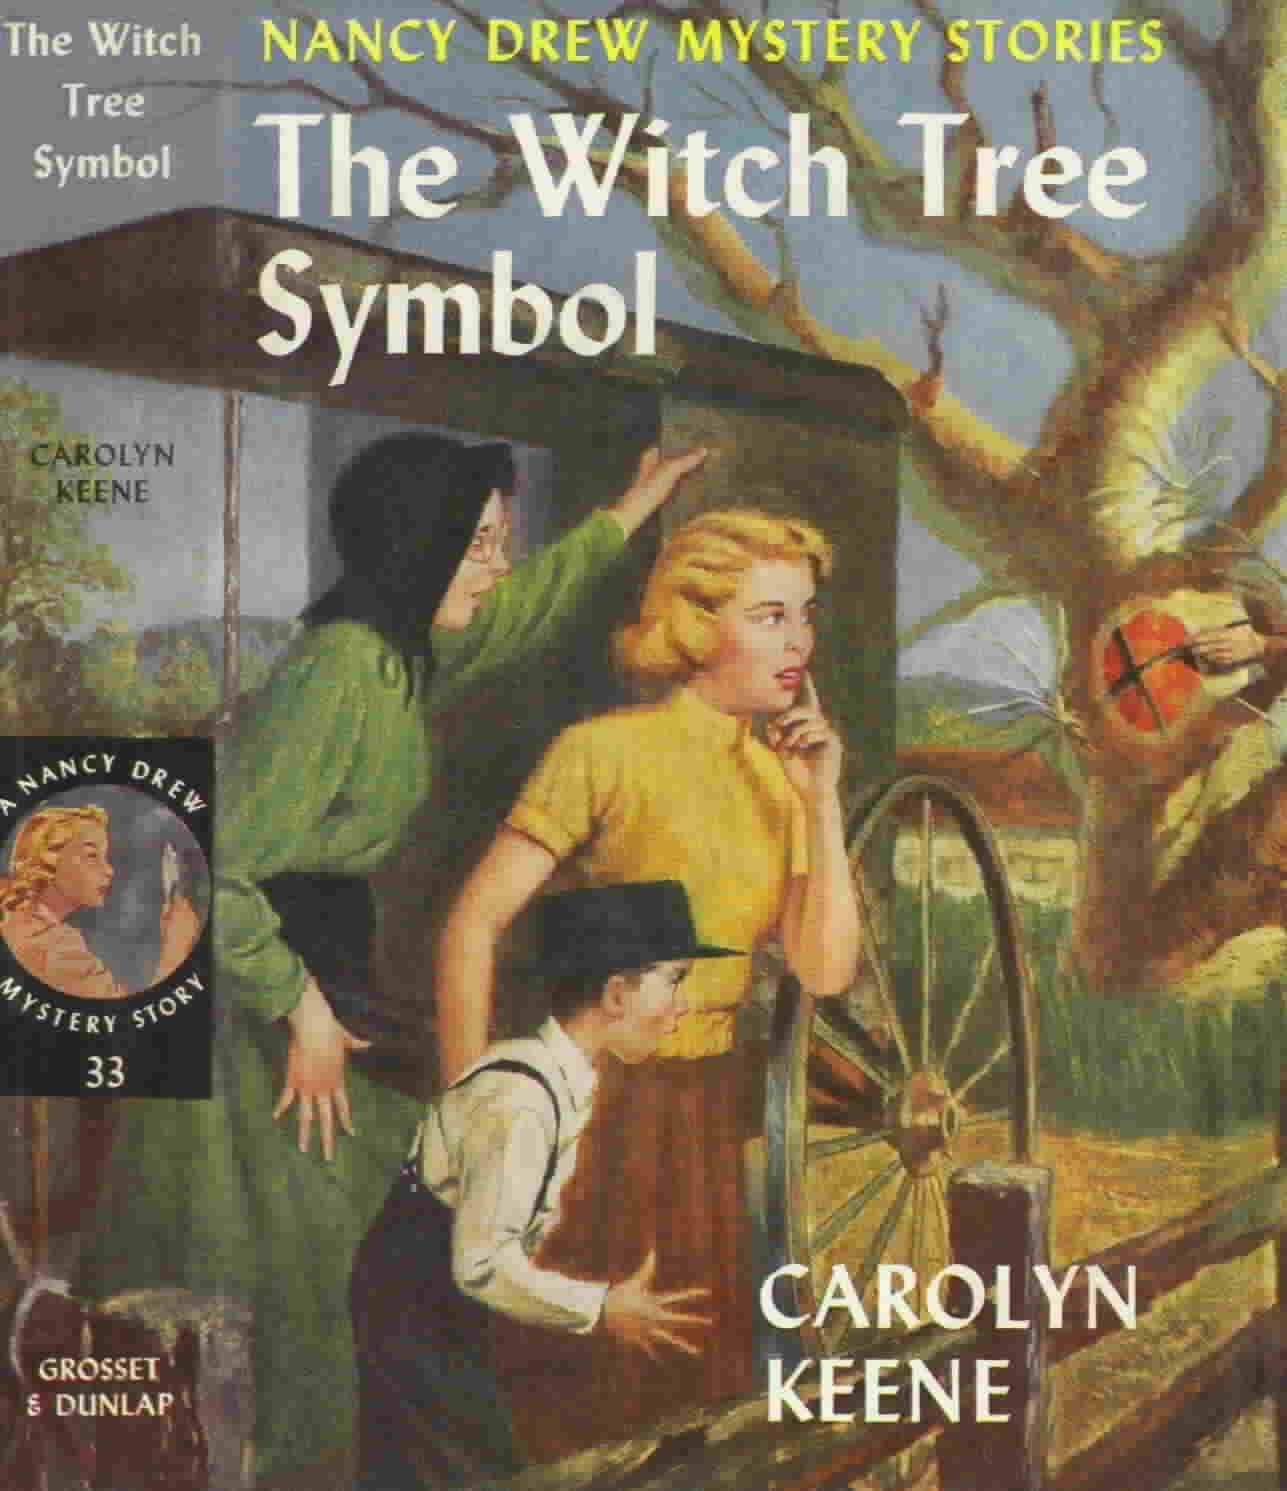 The Witch Tree Symbol